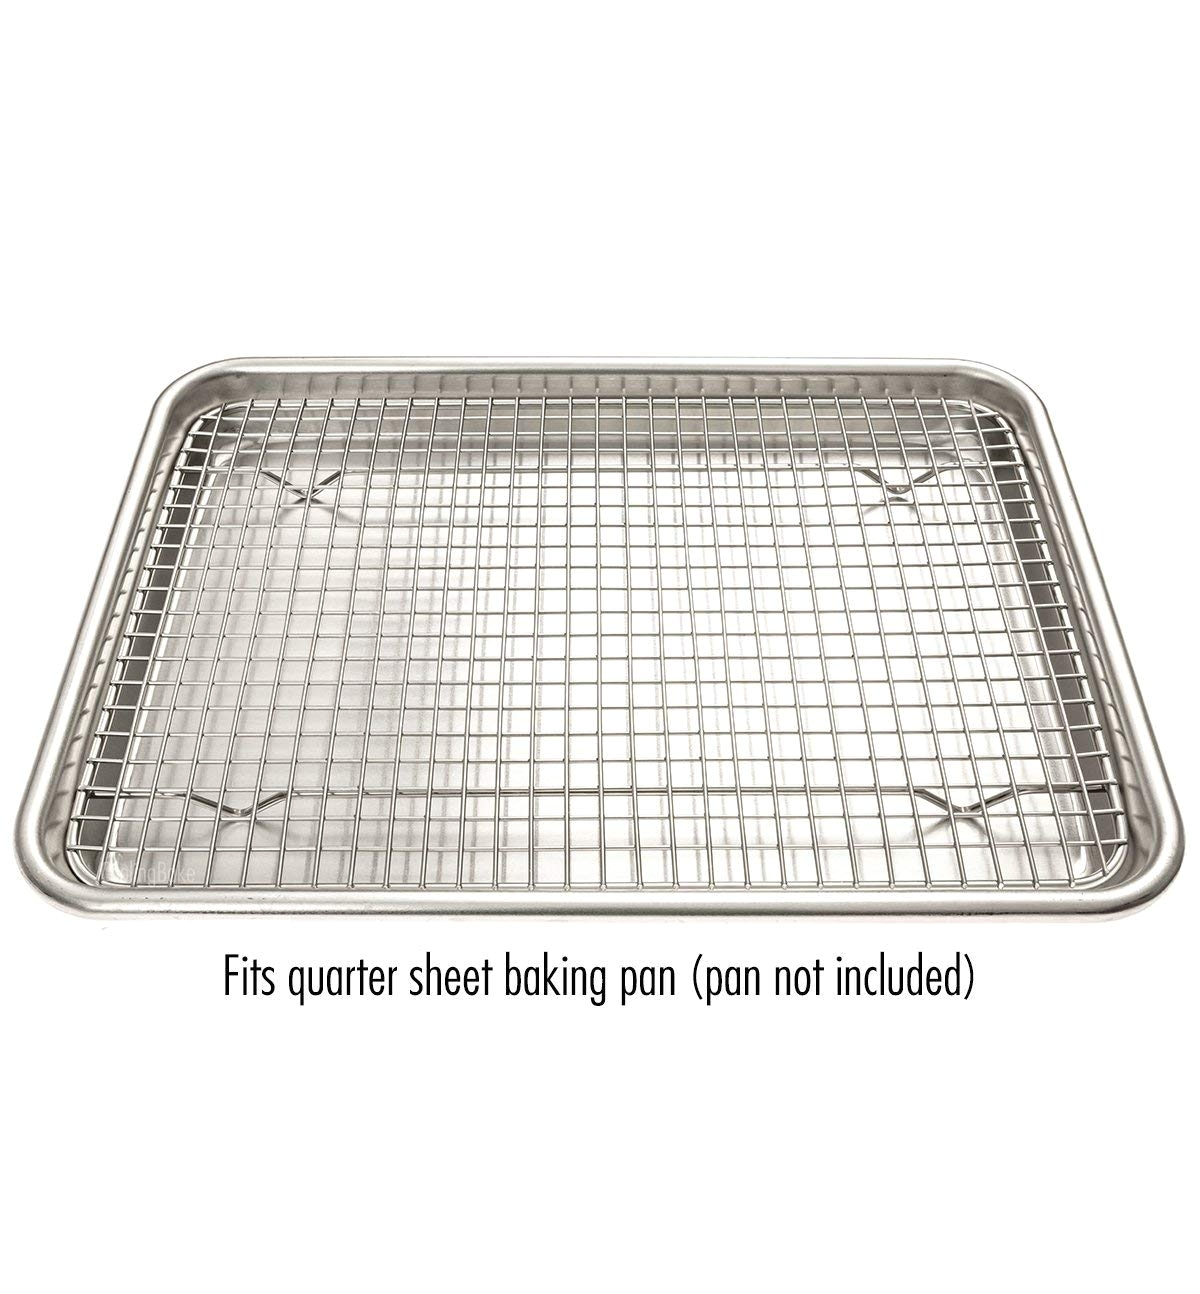 amazon com stainless steel cooling rack fits quarter sheet baking pan oven safe rust resistant heavy duty 8 5 x 12 kitchen dining